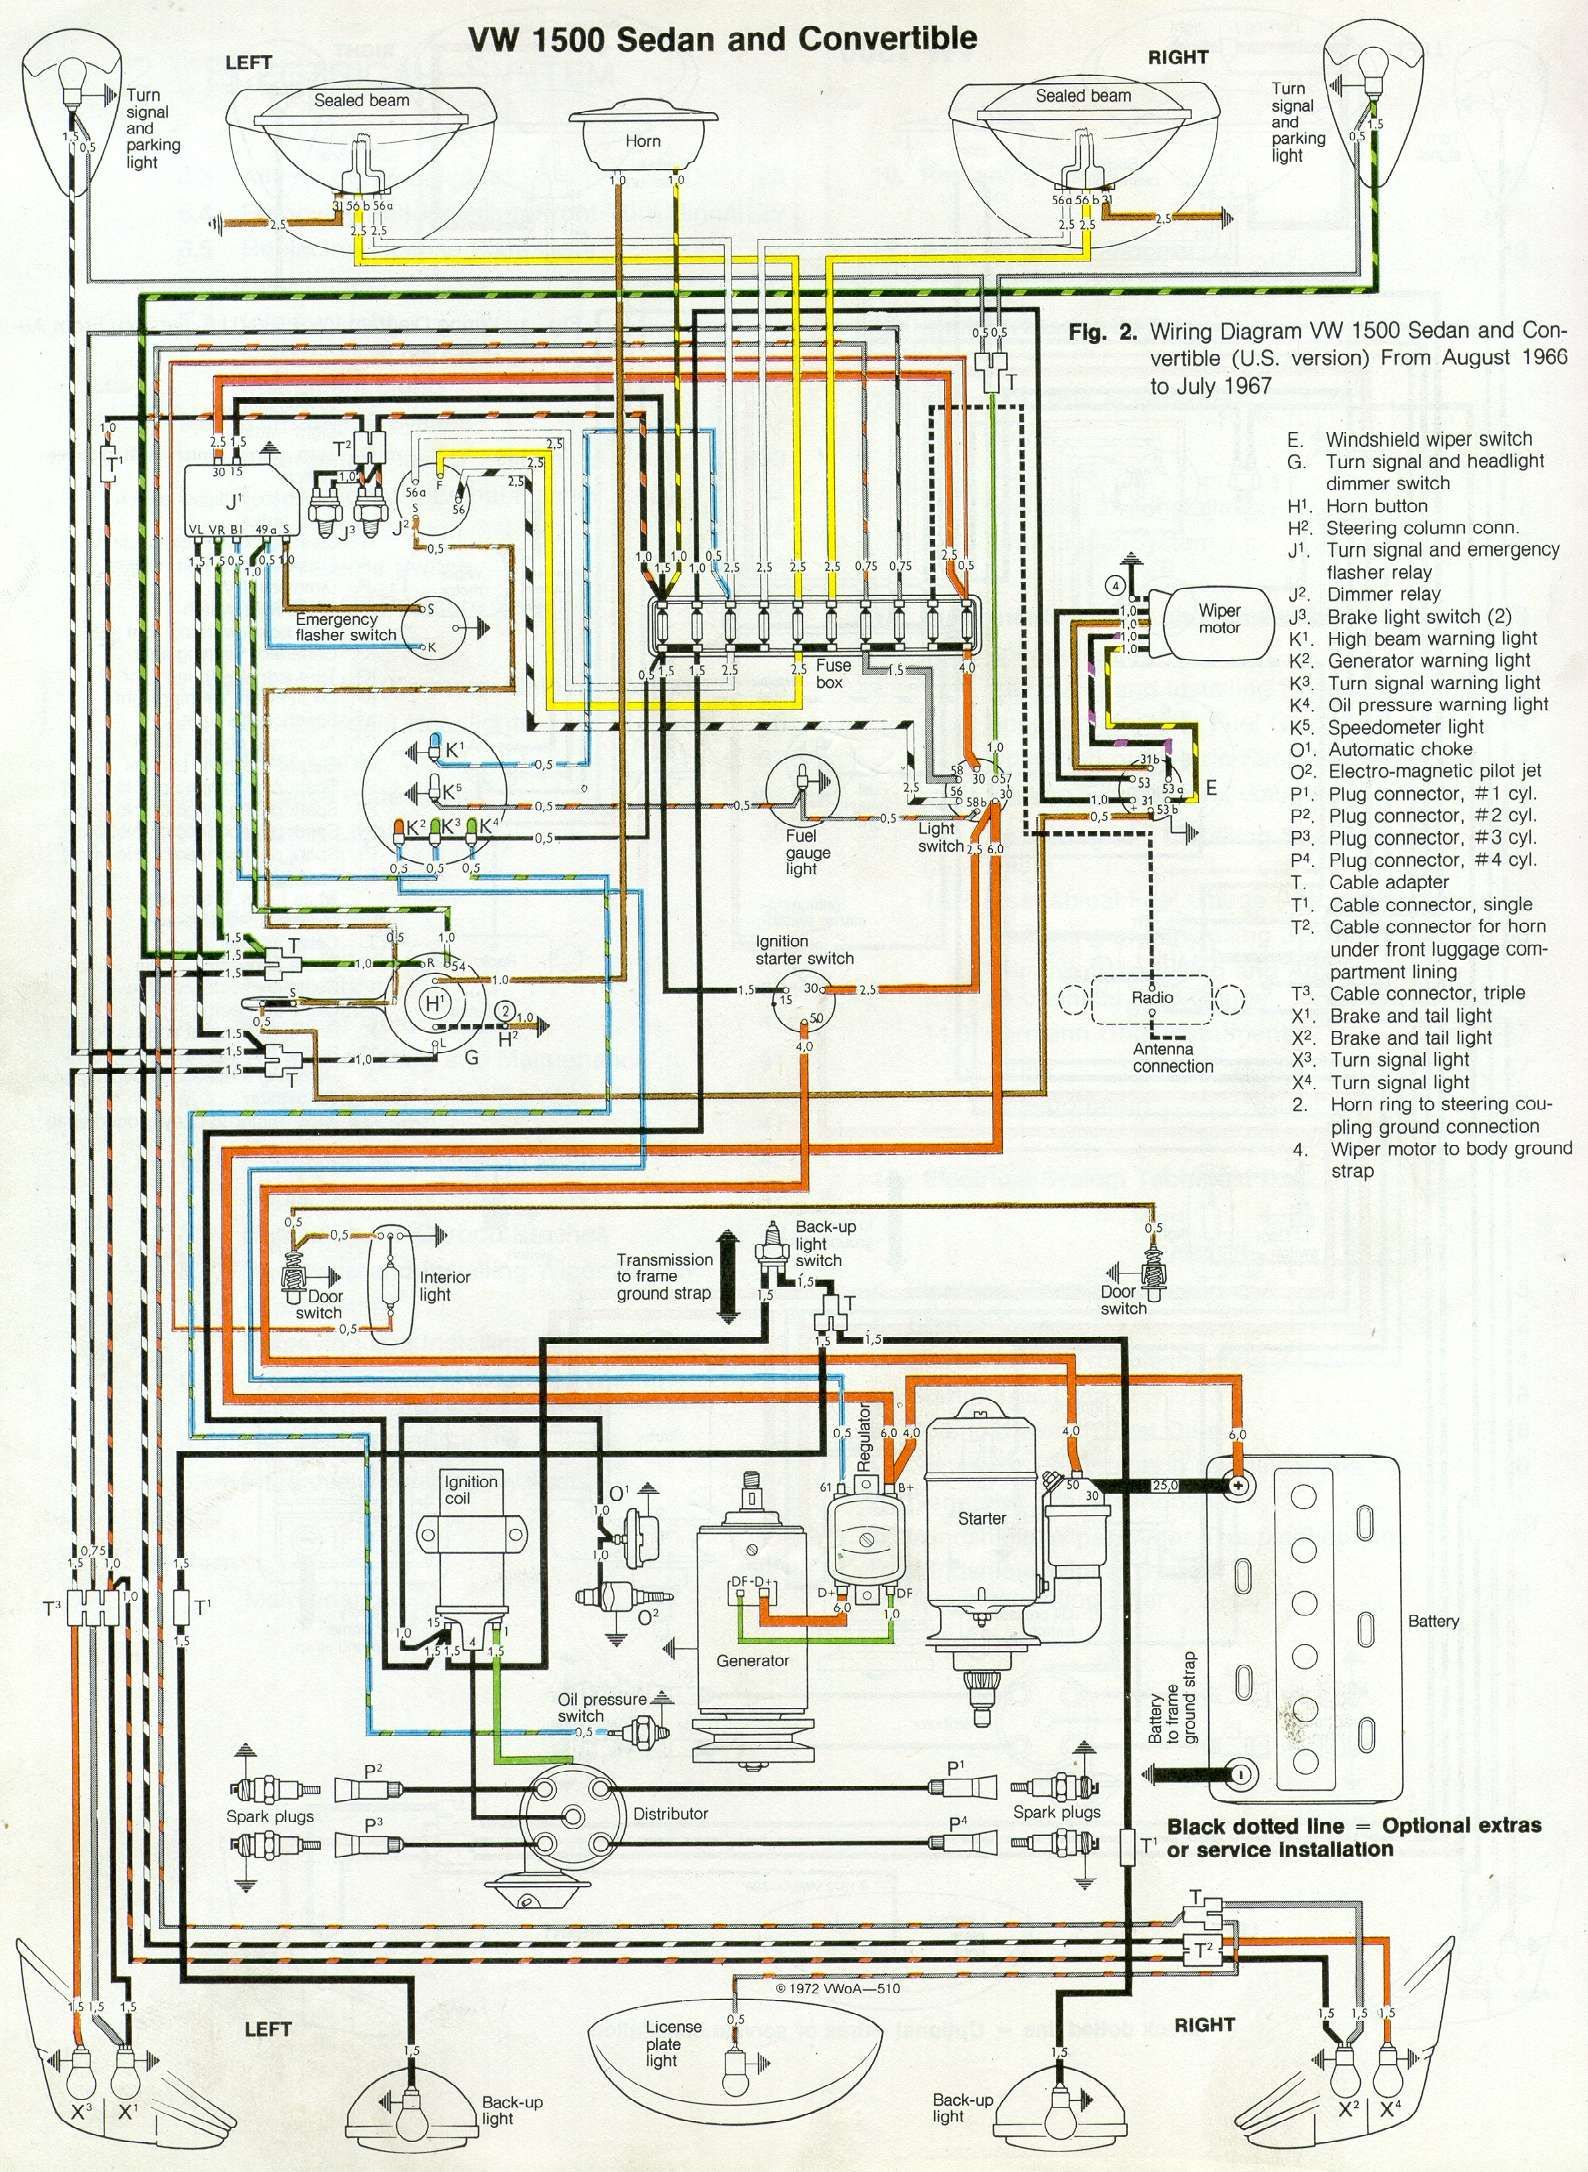 70 vw bug wiring diagram schematic diagram data 1970 vw wiring diagram wiring diagram database 1969 [ 1588 x 2172 Pixel ]